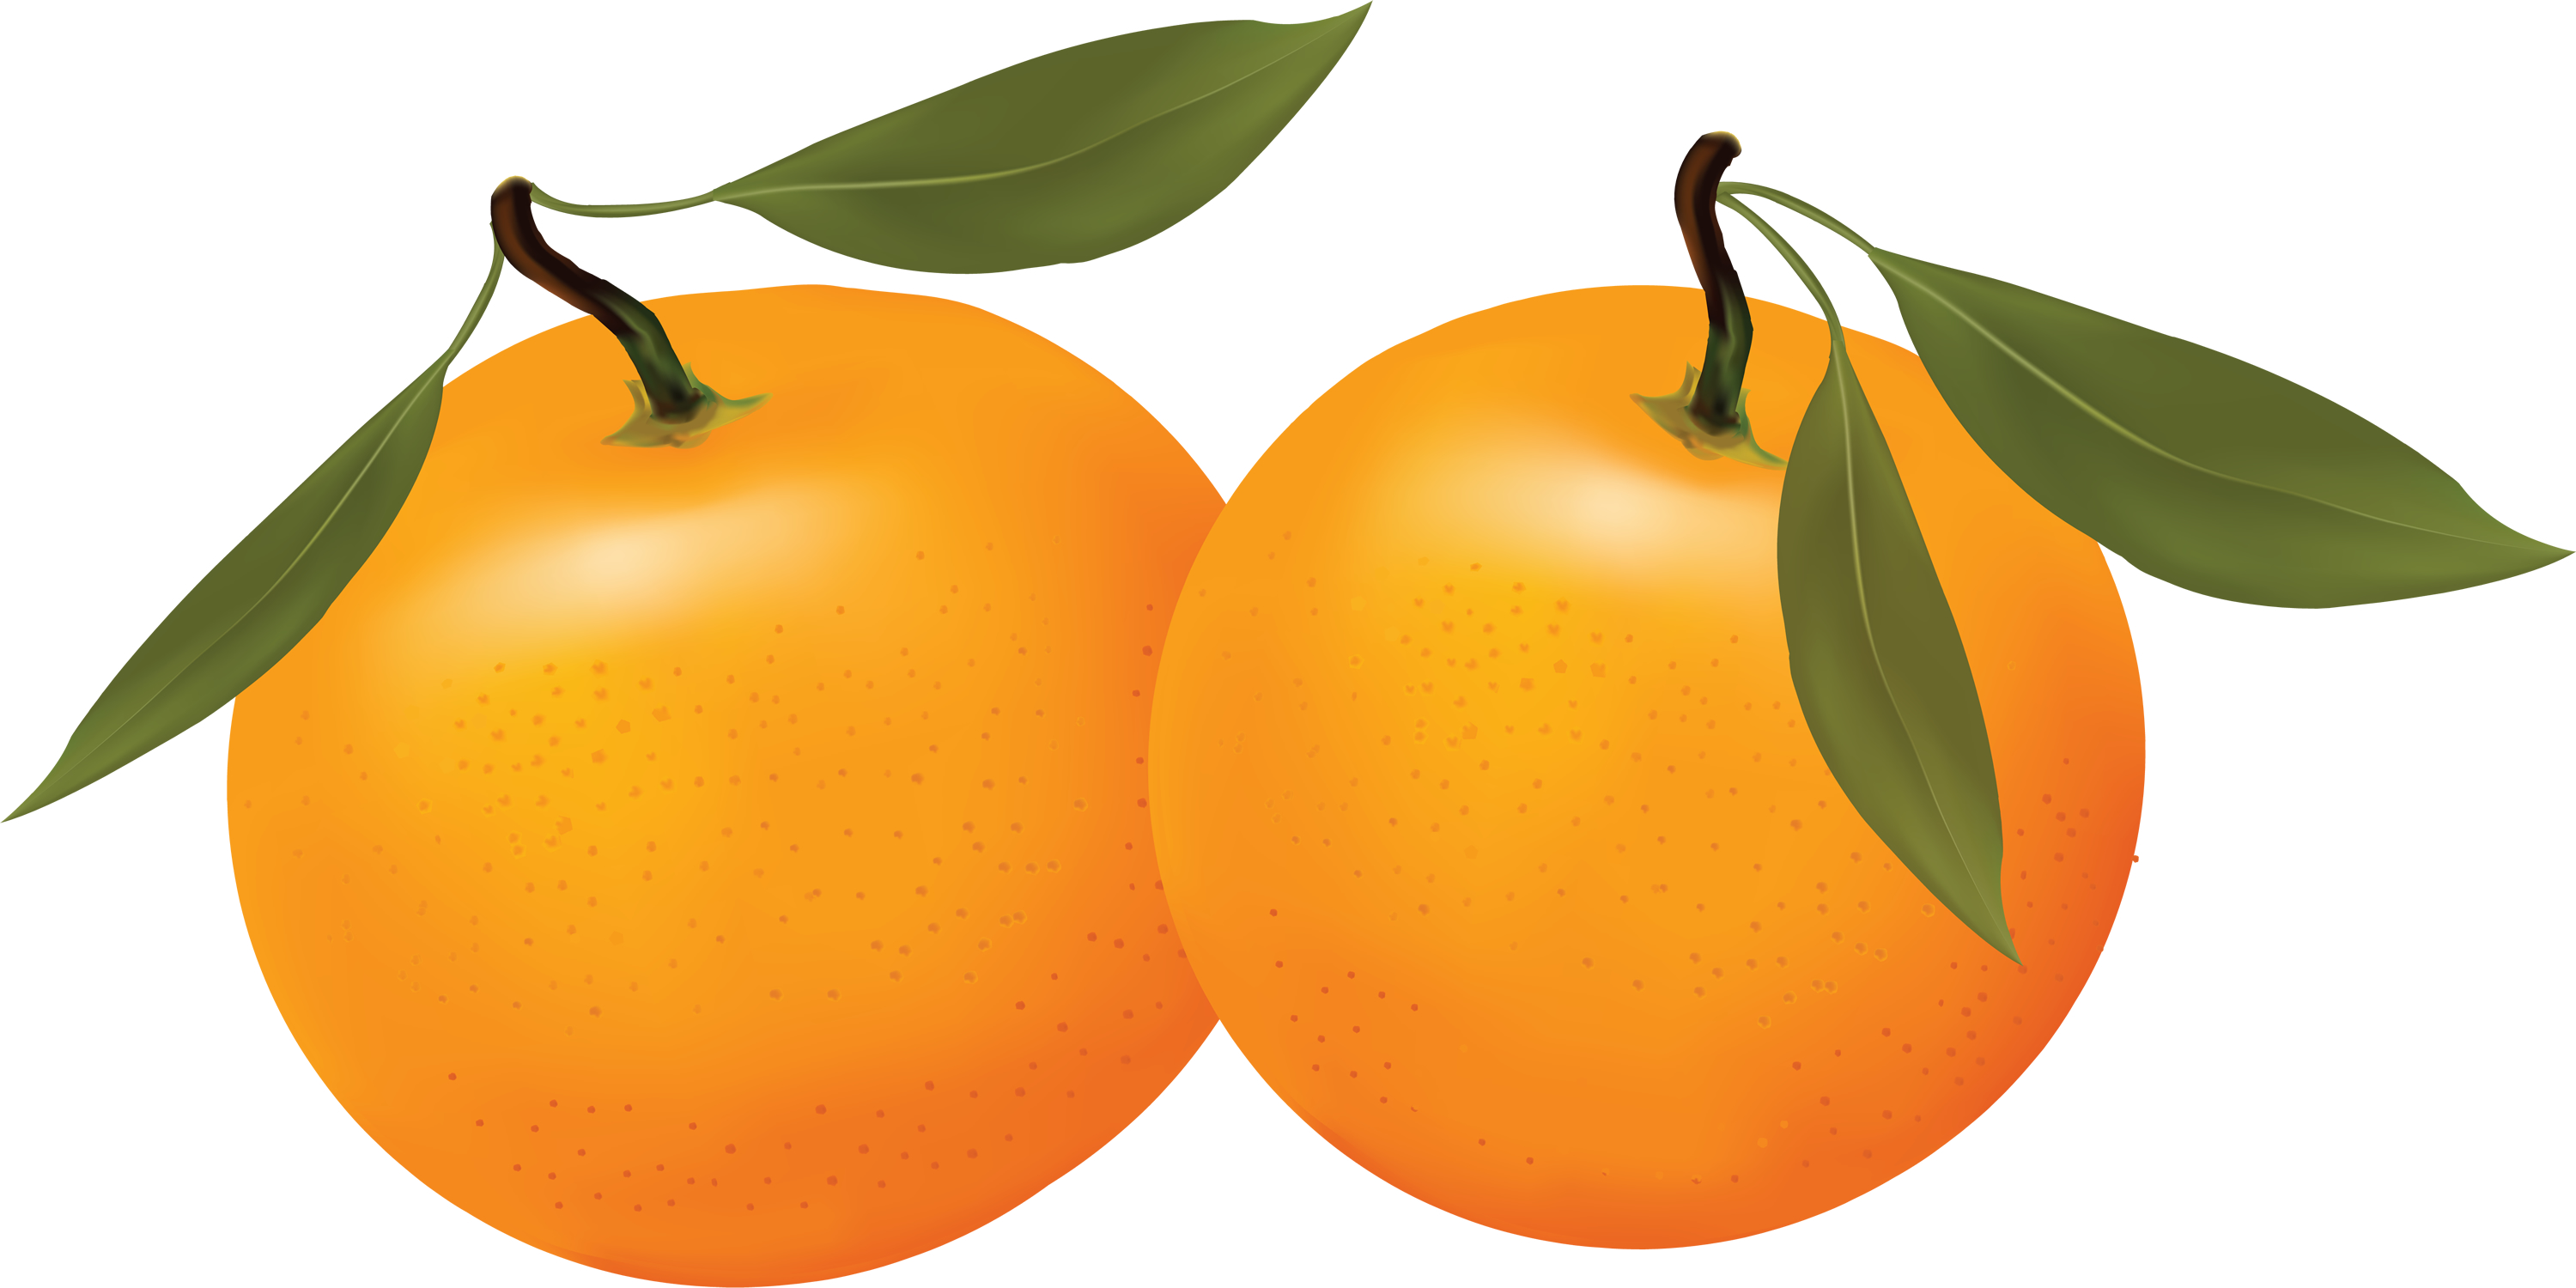 Orange Fruit Cartoon Clipart Free Clip Art Images